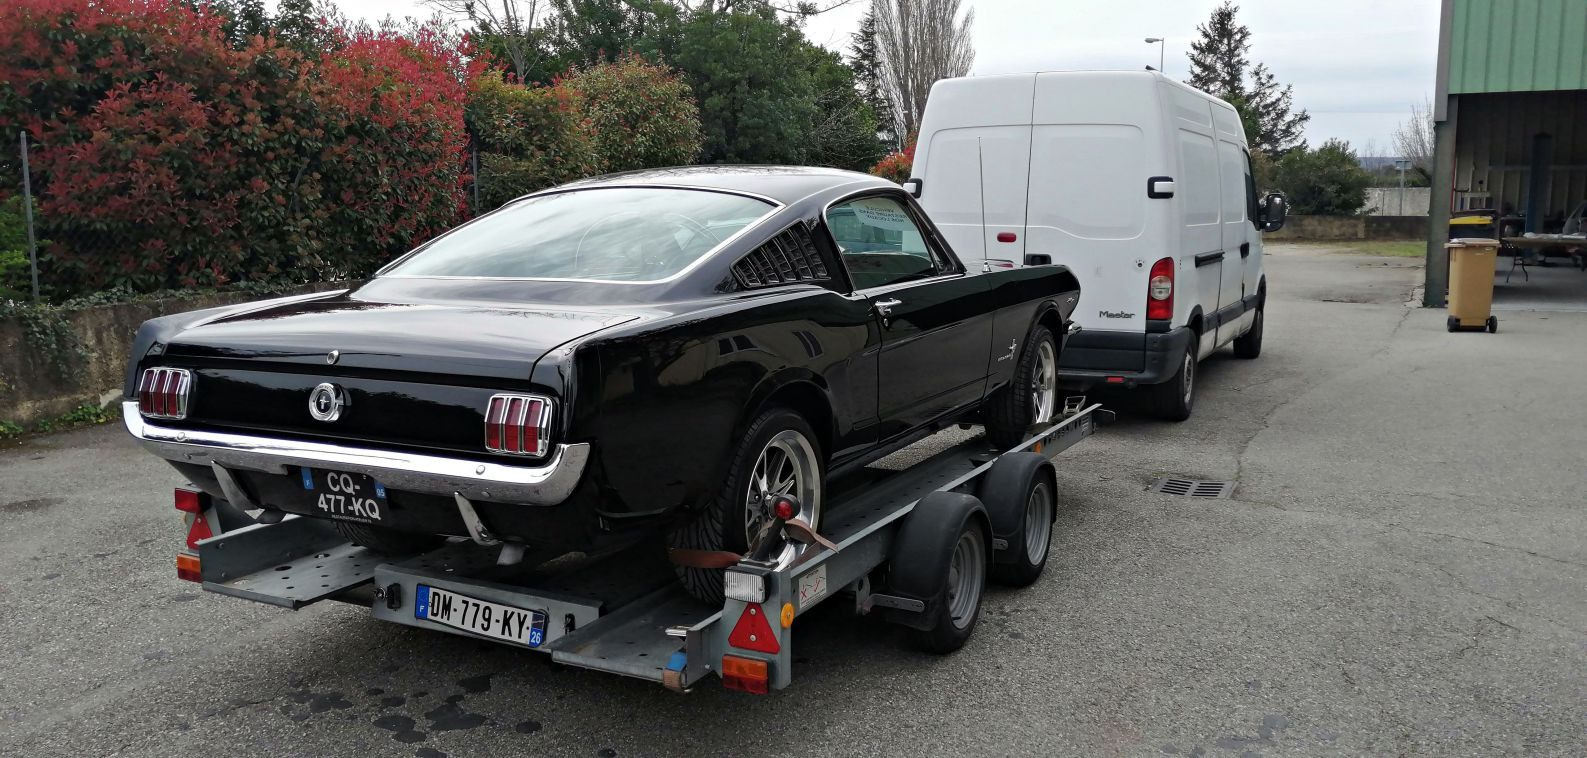 Restauration terminée - FORD Mustang Fastback